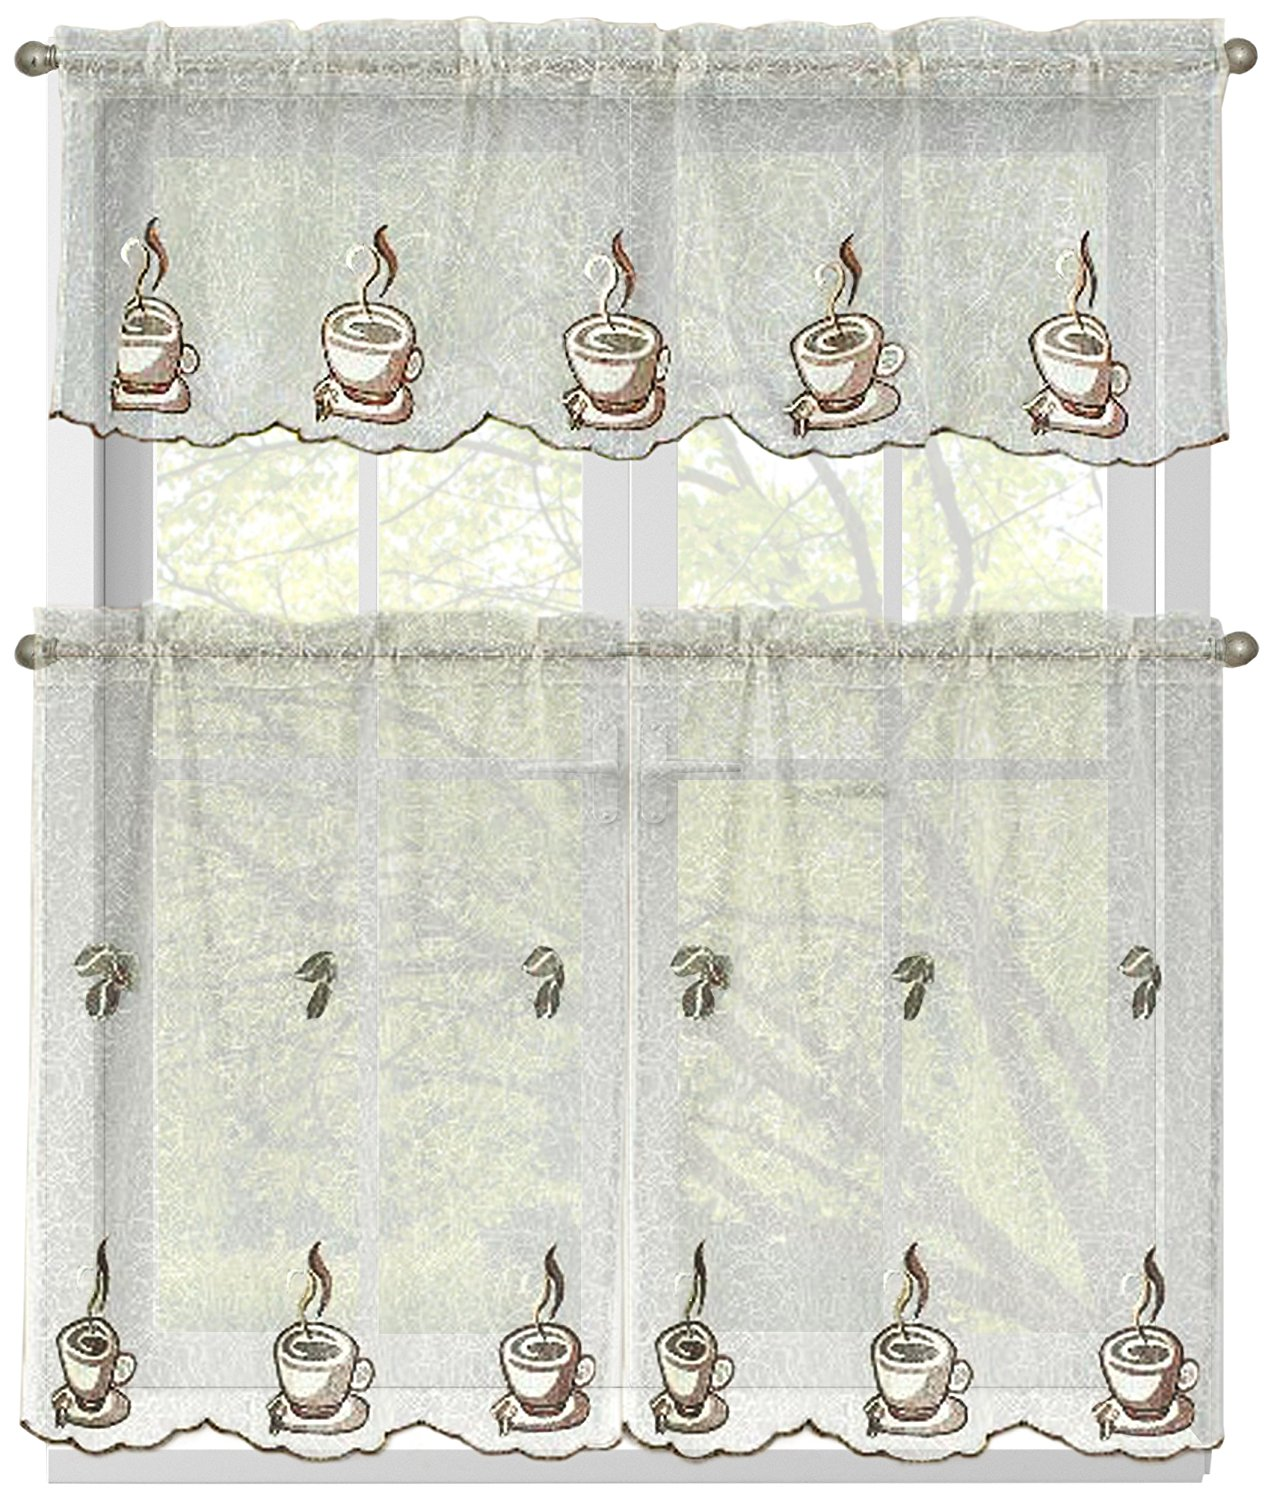 Window Elements Embroidered 3-Piece Kitchen Tier and Valance 60 x 54 Set, Three Cups a Day